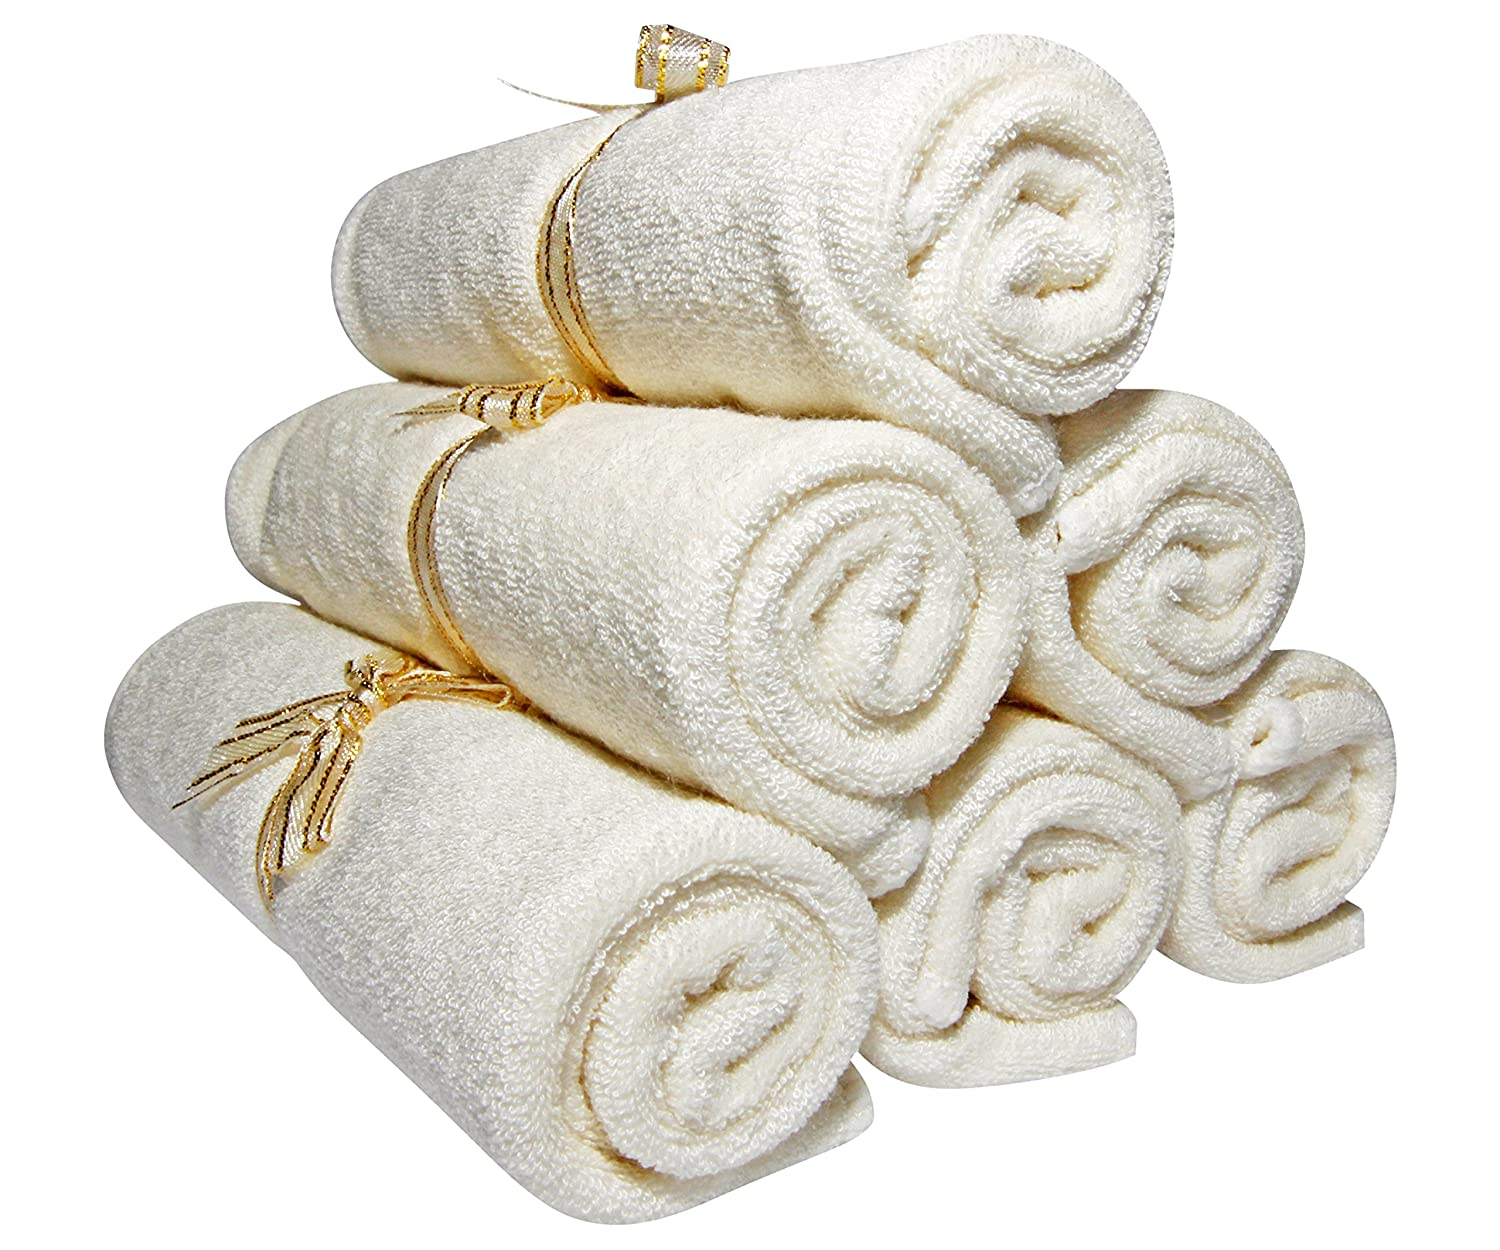 #1 Bamboo Baby Washcloths - Durable, Soft, Thick & Suited for Eczema Skin. Luxury Facial Towels Best for Baby Shower Registry & Gifts. Natural, Dye Free & Safe. 10.6